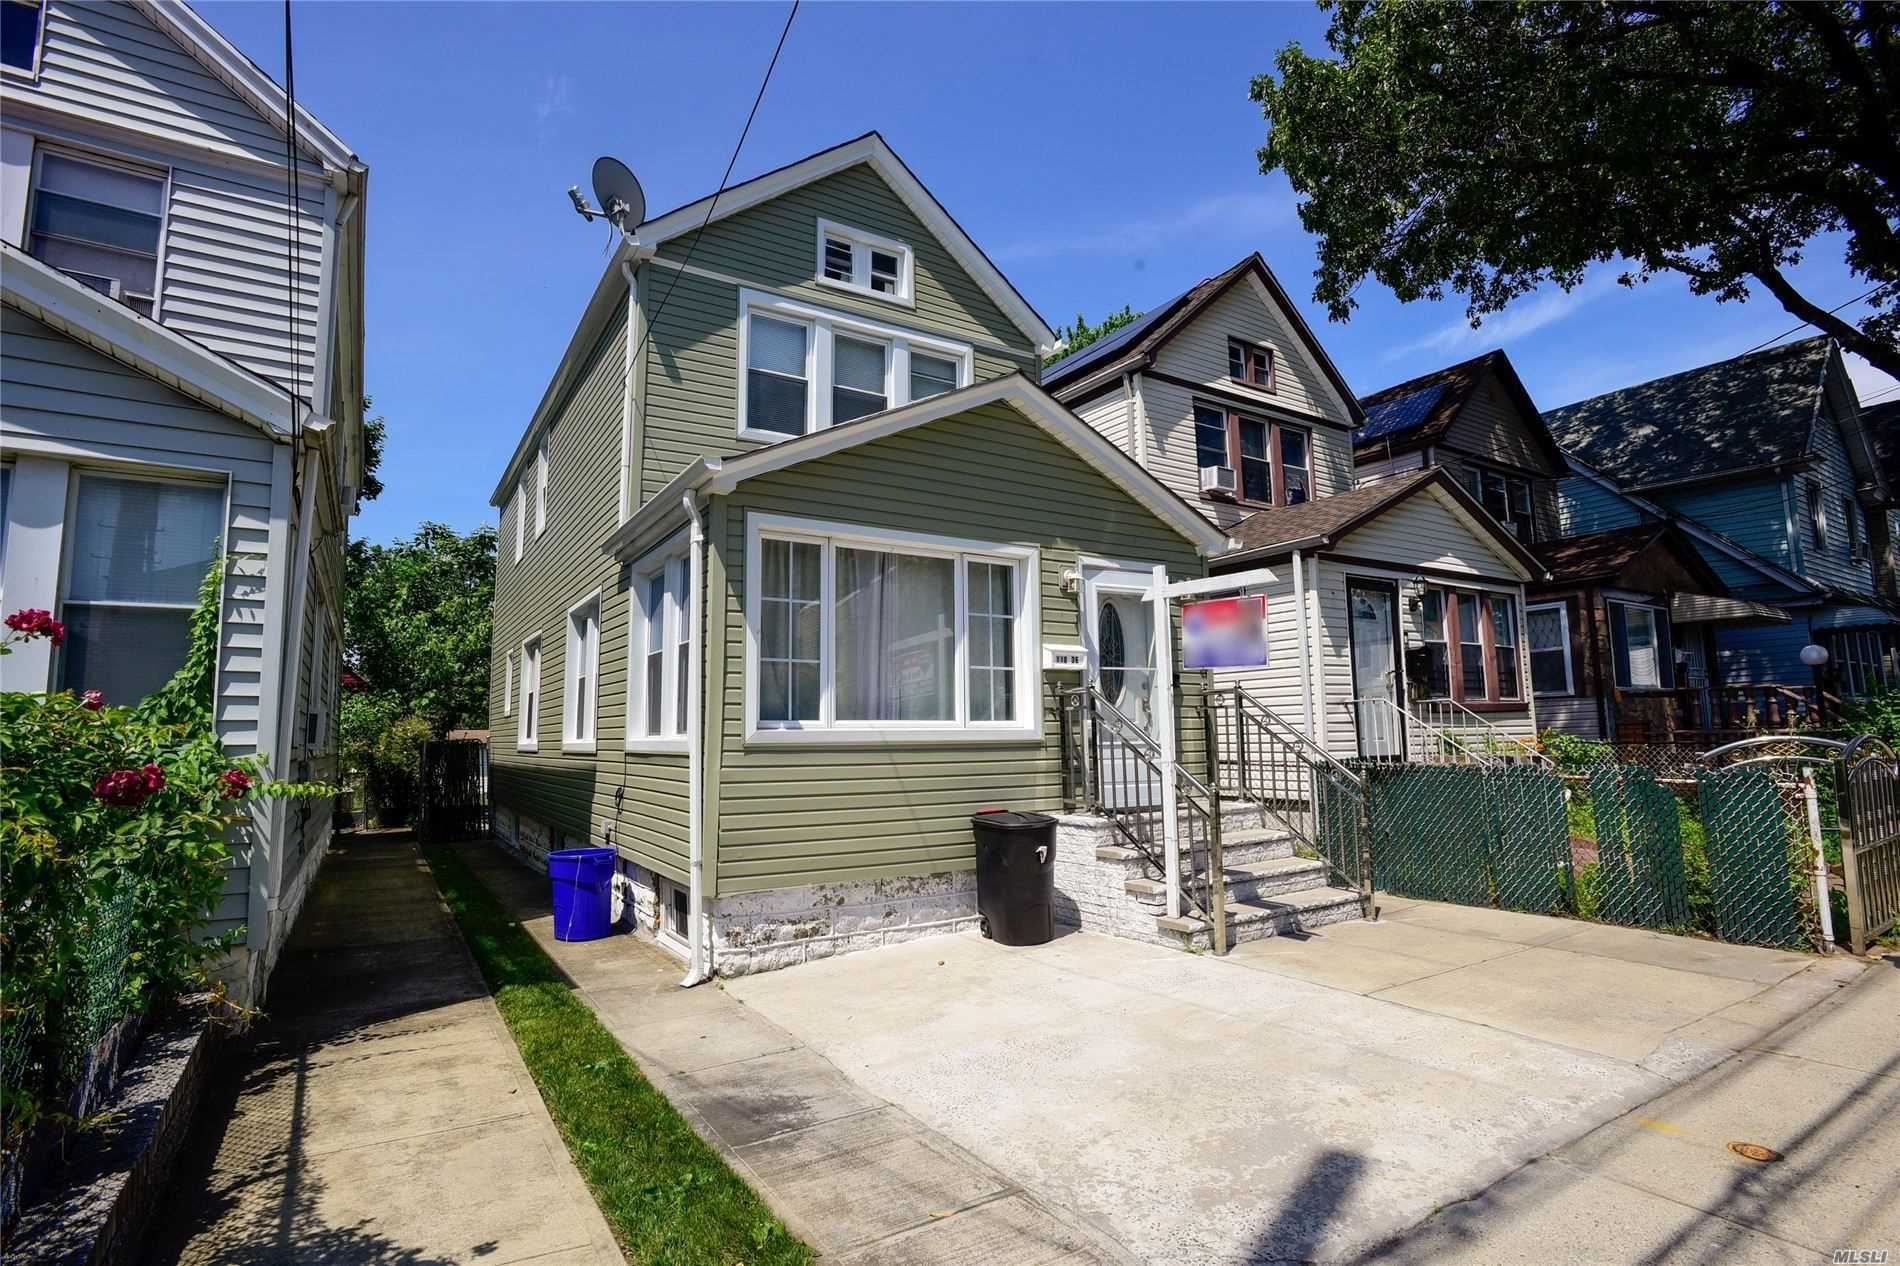 110-36 Union Hall St, Jamaica, NY 11433 - MLS#: 3224826